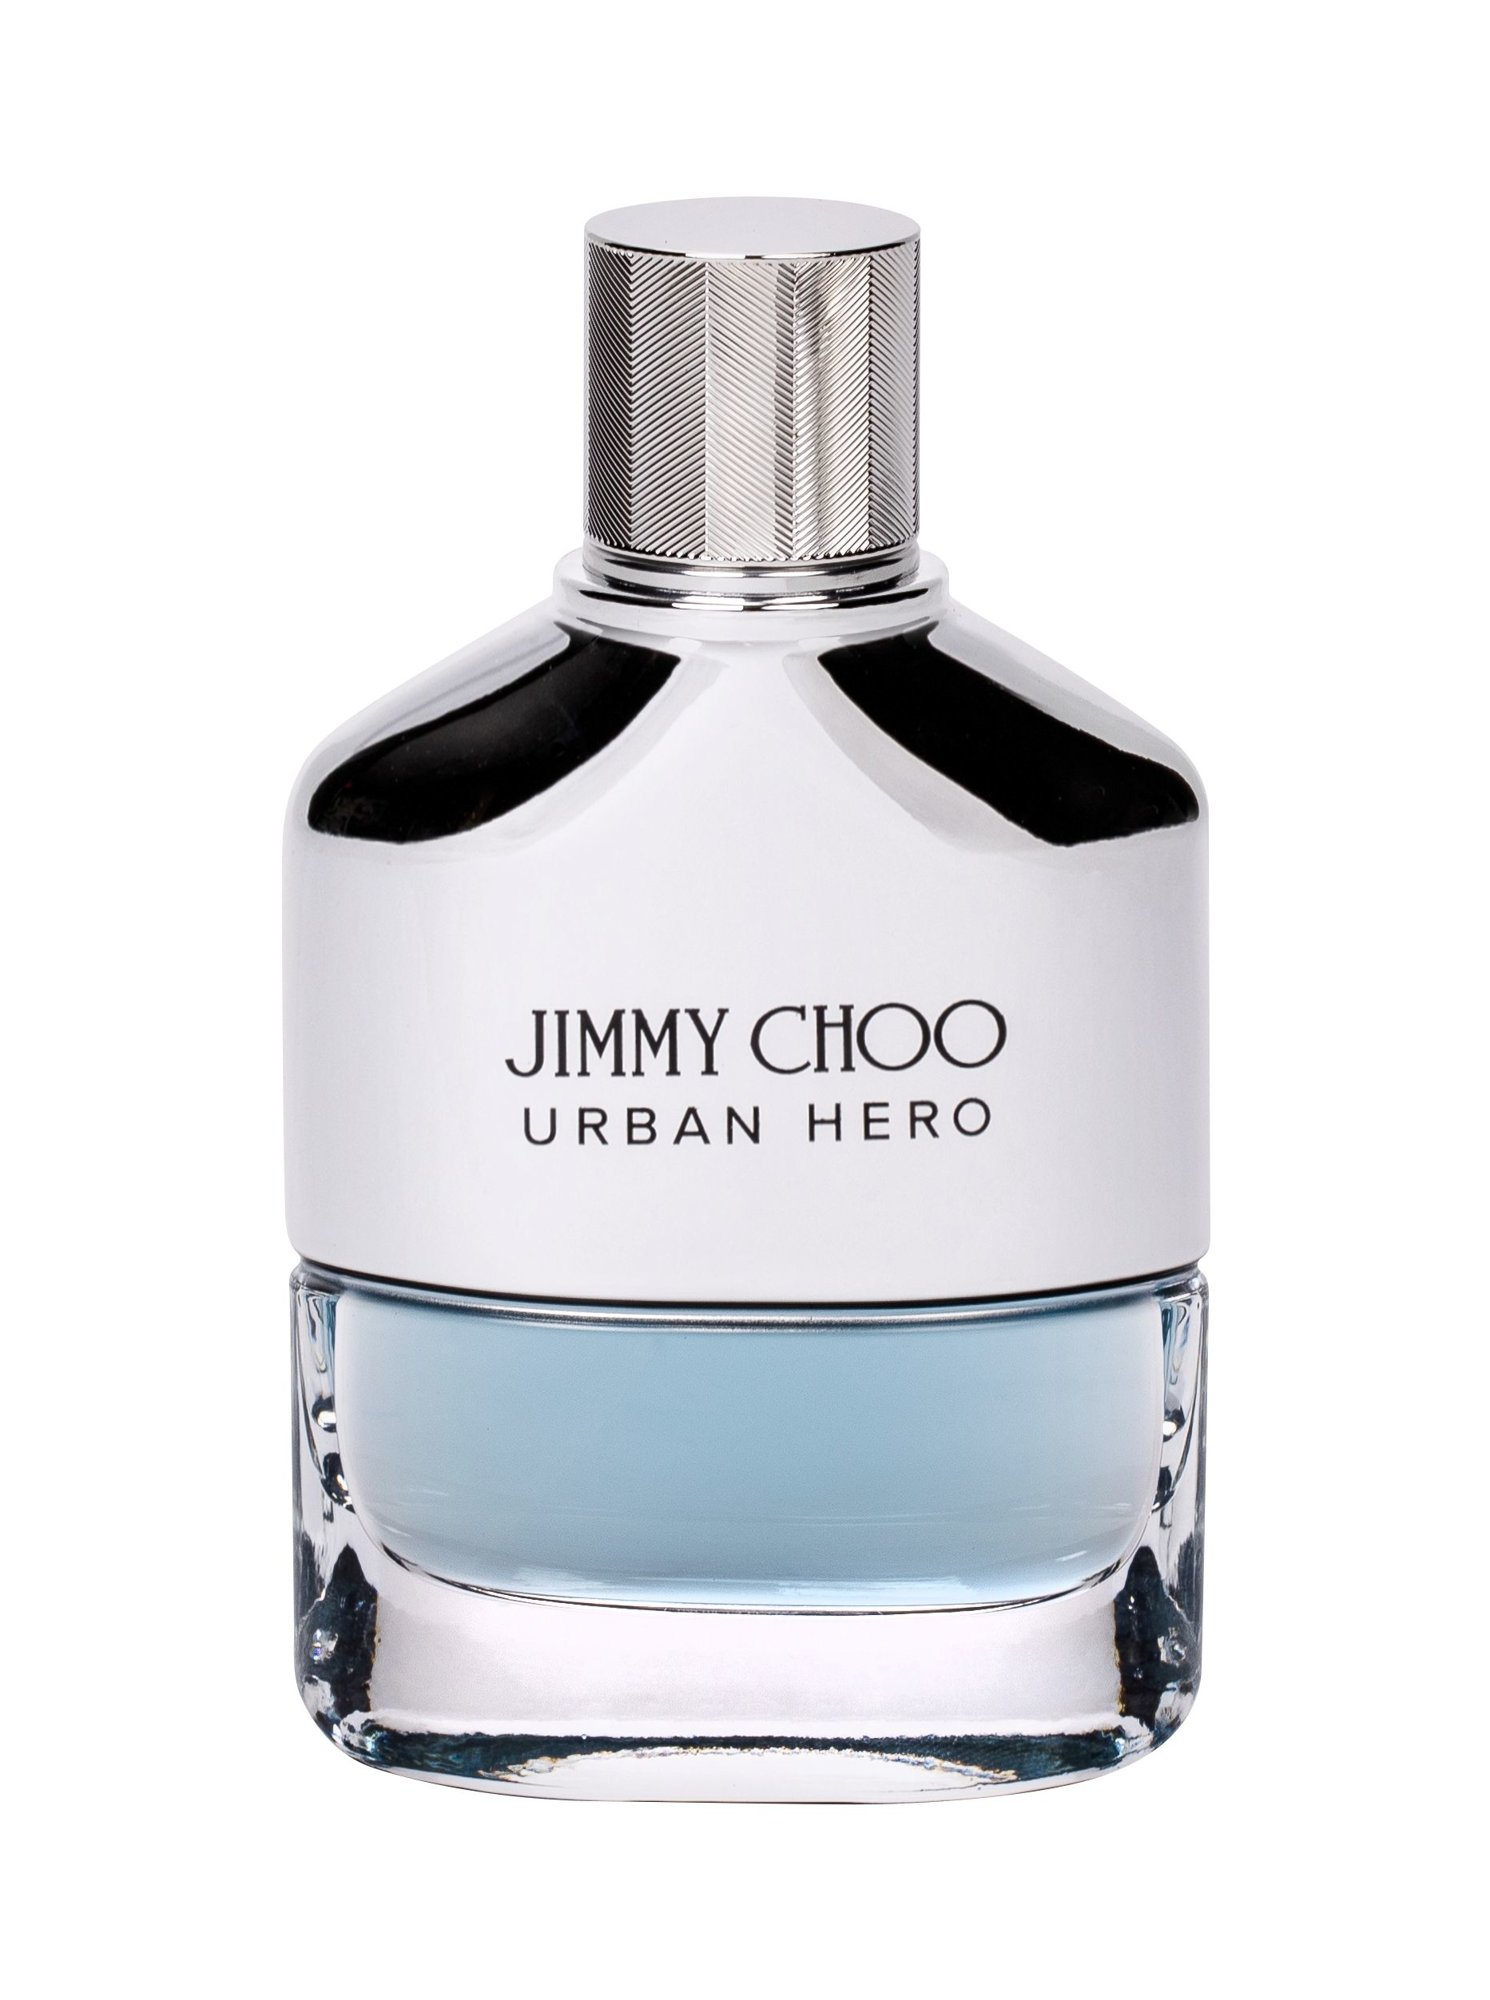 Jimmy Choo Urban Hero Eau de Parfum 100ml